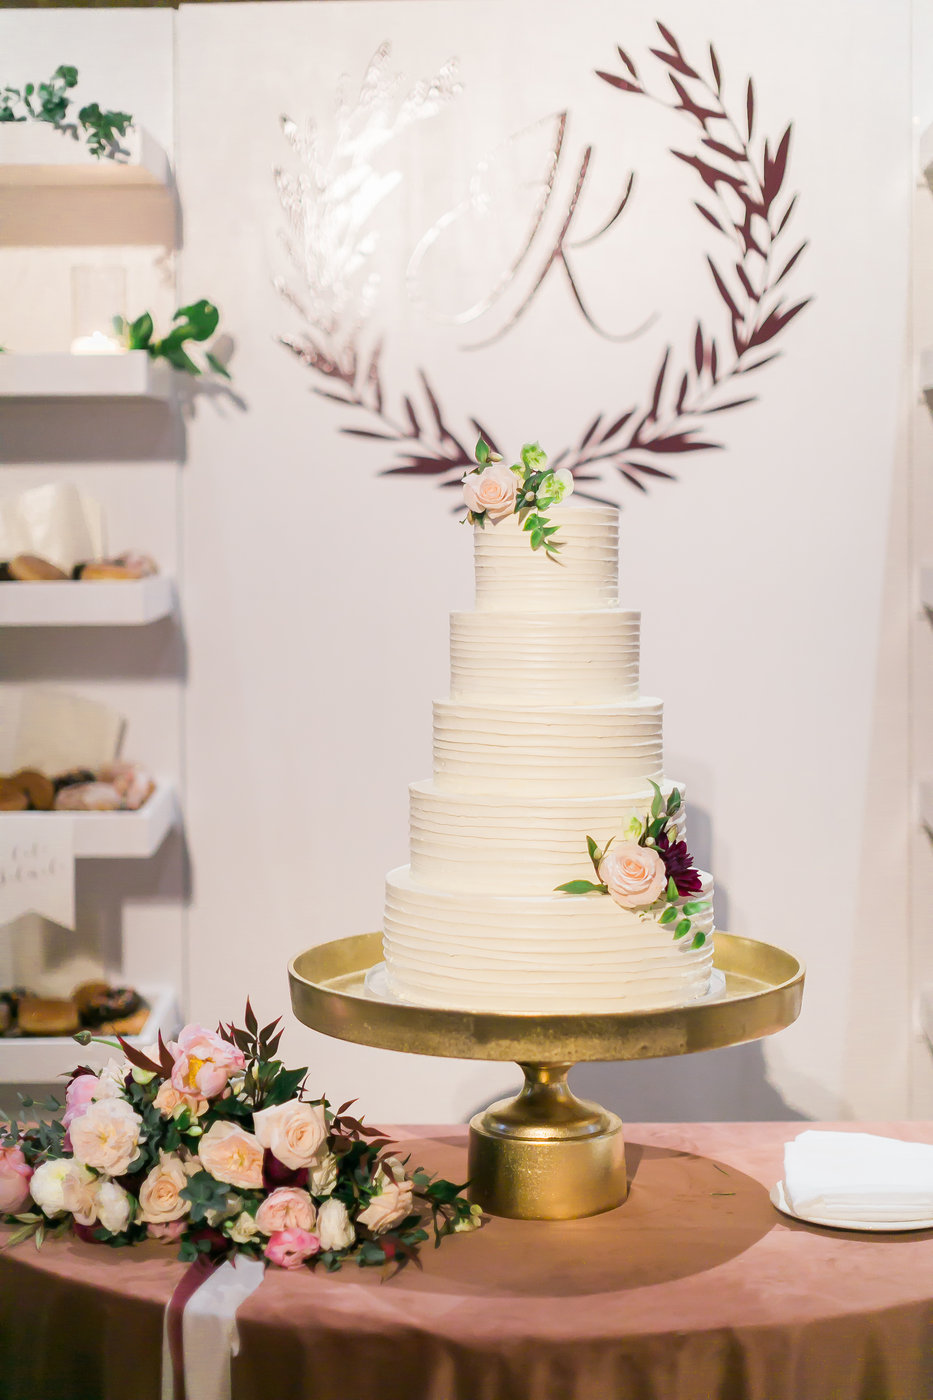 wedding cake las vegas wedding planner angelica rose events with peridot sweets.jpg